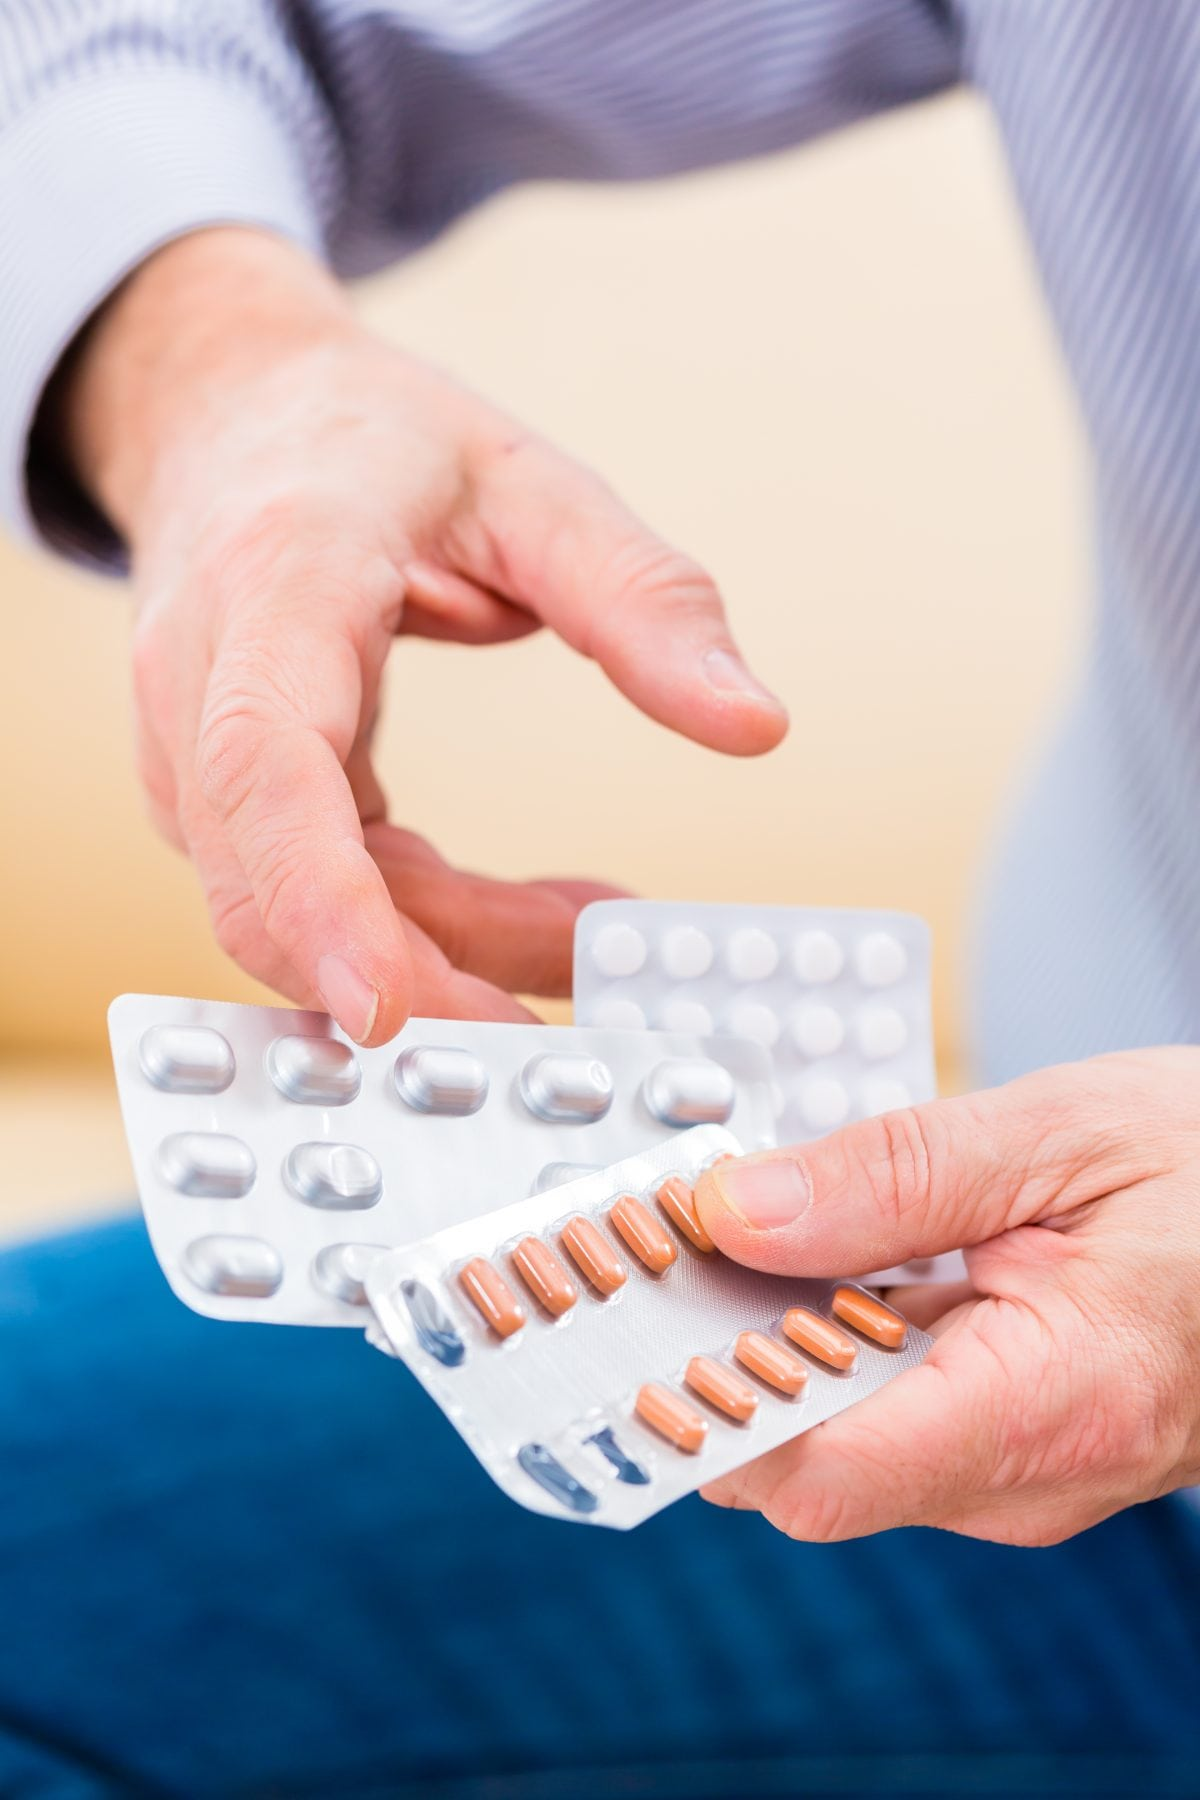 Statins- What do We Really Know?